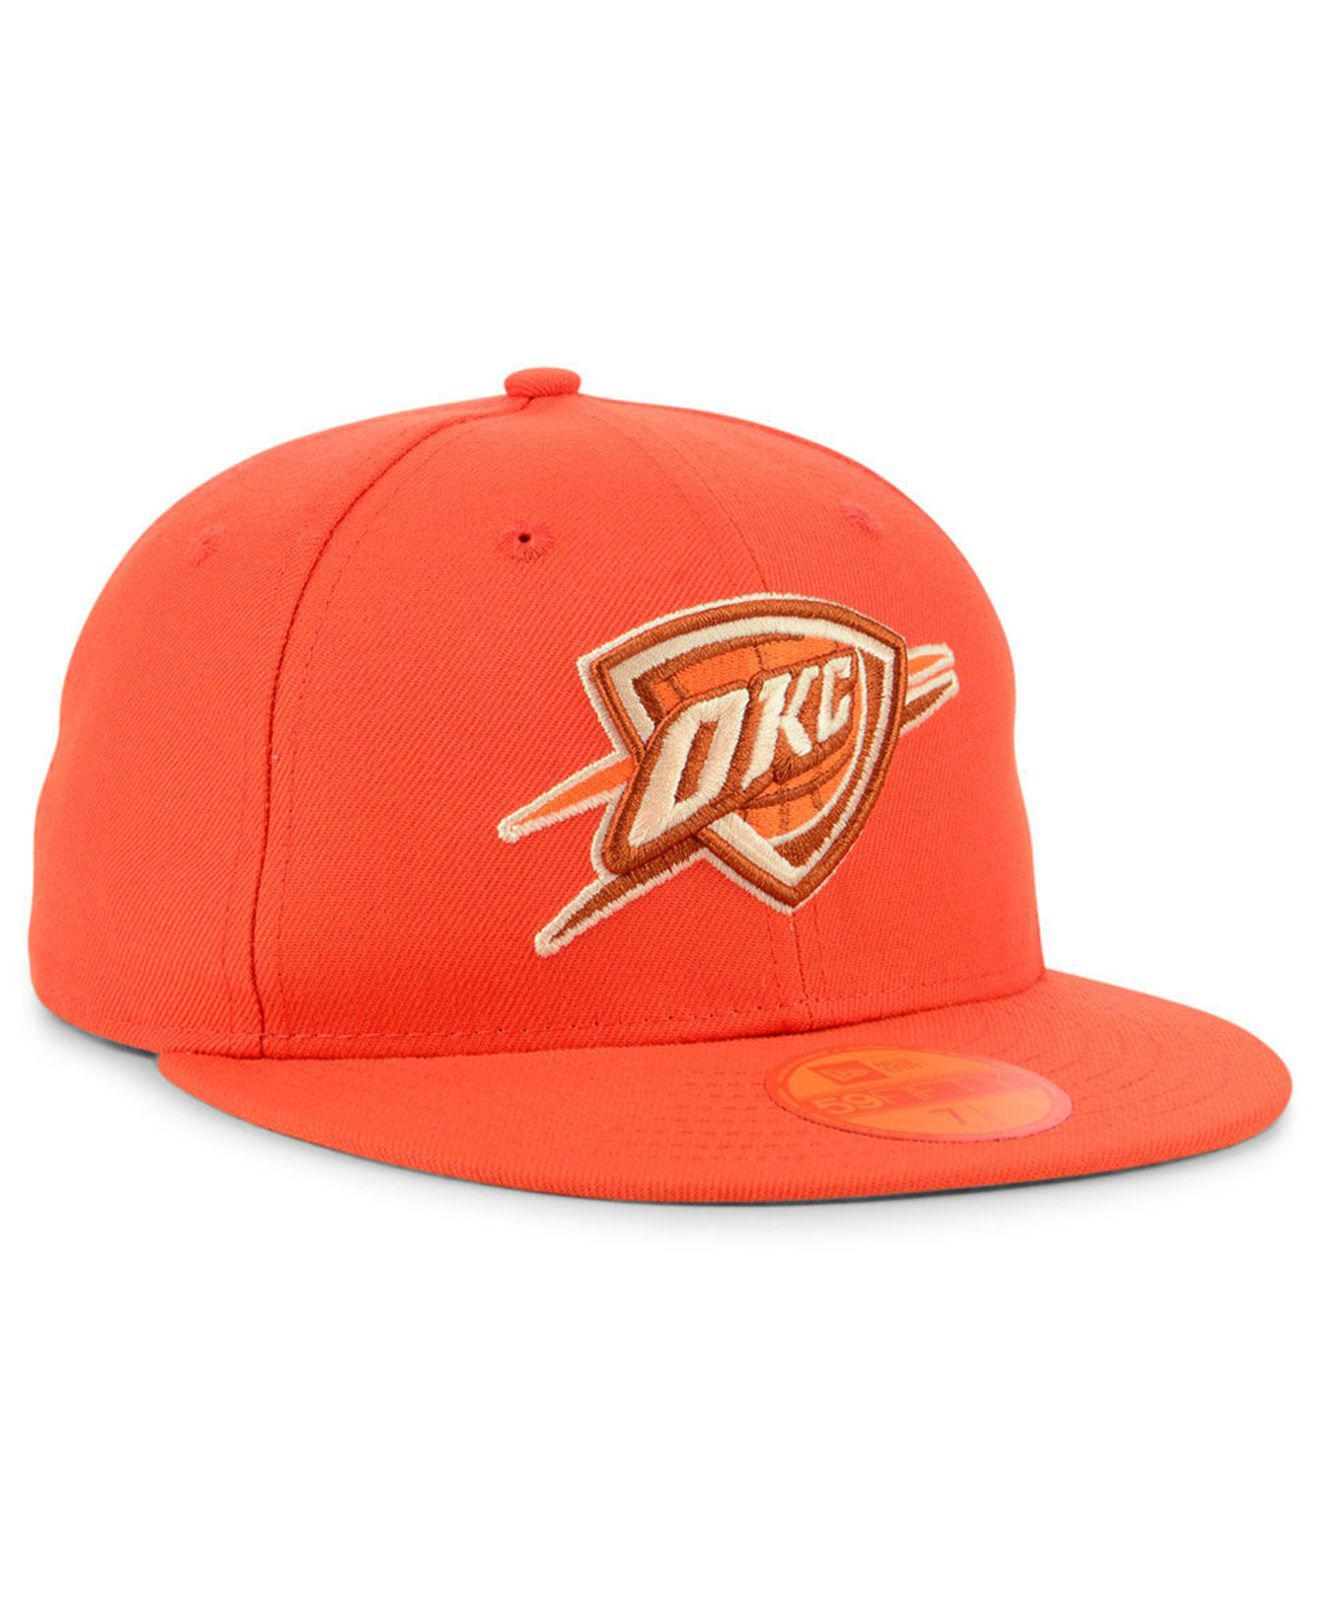 meet 22dd8 db8e2 ... reduced lyst ktz oklahoma city thunder color prism pack 59fifty fitted  cap 1f924 6ff51